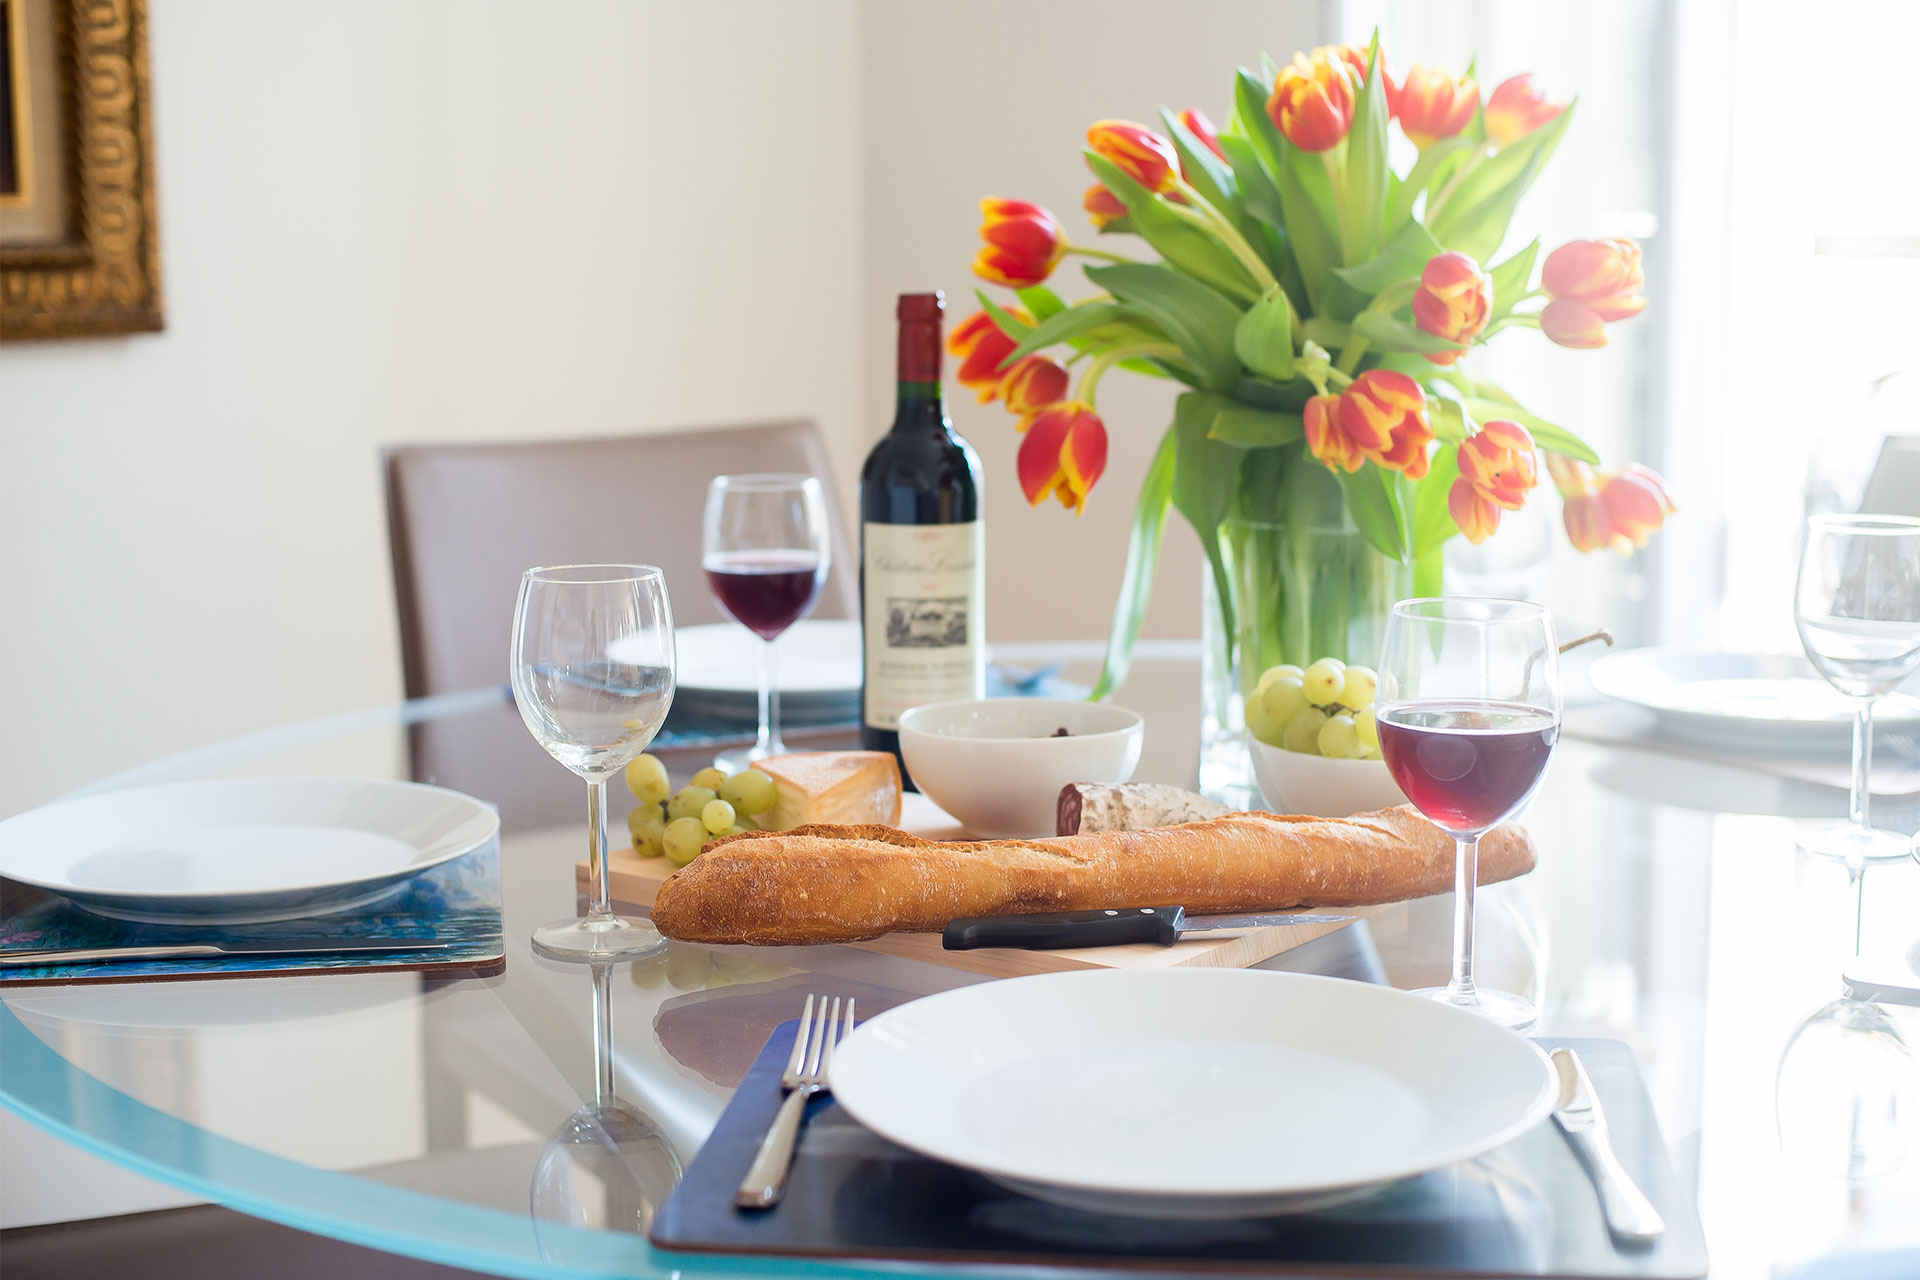 Enjoy a classic French meal made with local produce at the Saint-Bris rental